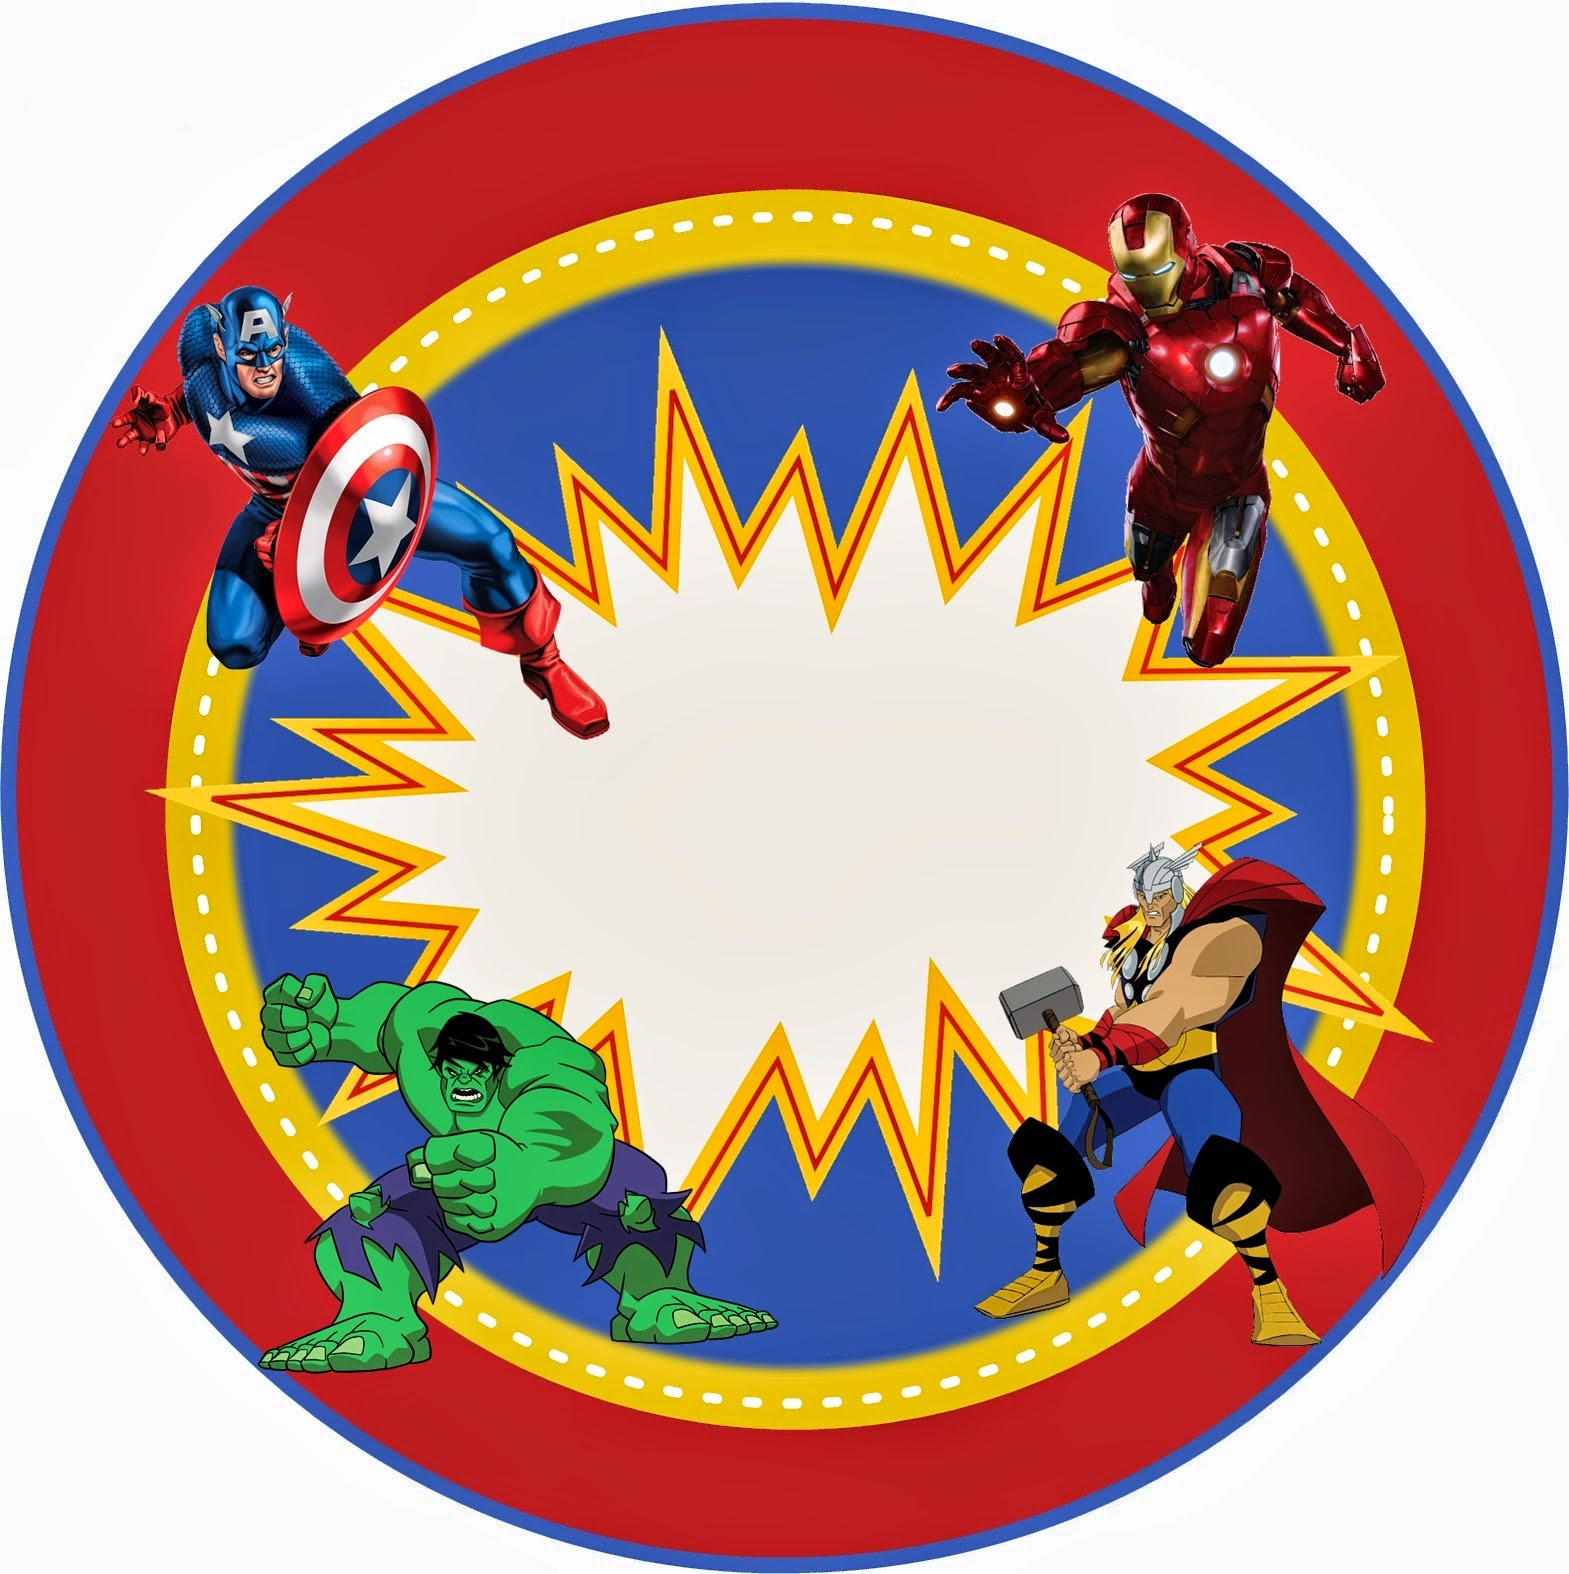 Avengers Free Printable Kit Oh My Fiesta in english